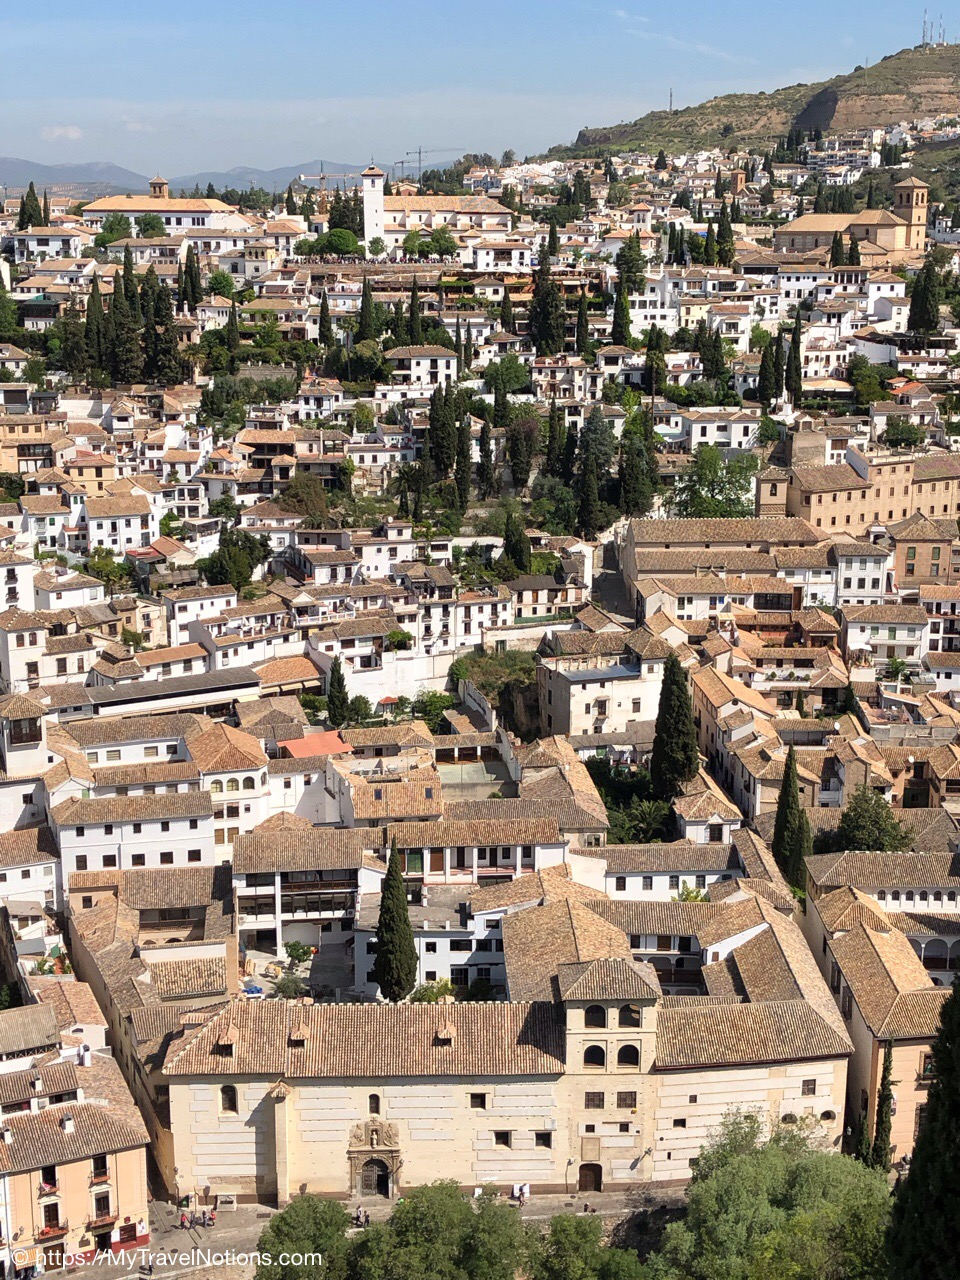 Spain, from Andalusia through Castile La Mancha to Madrid - My